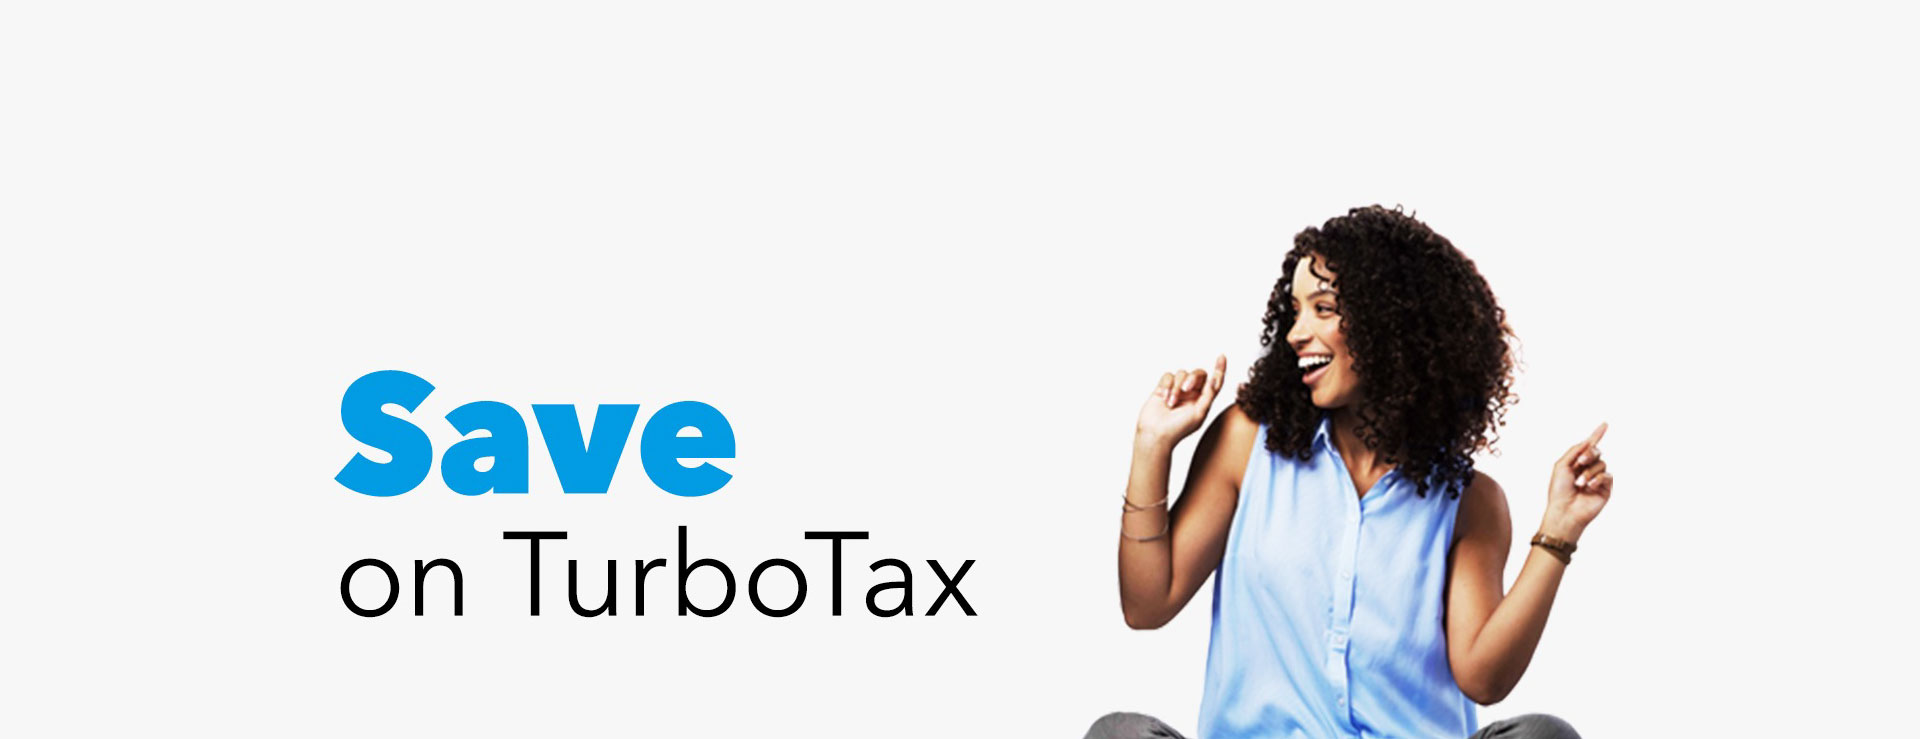 turbo-tax-web-2